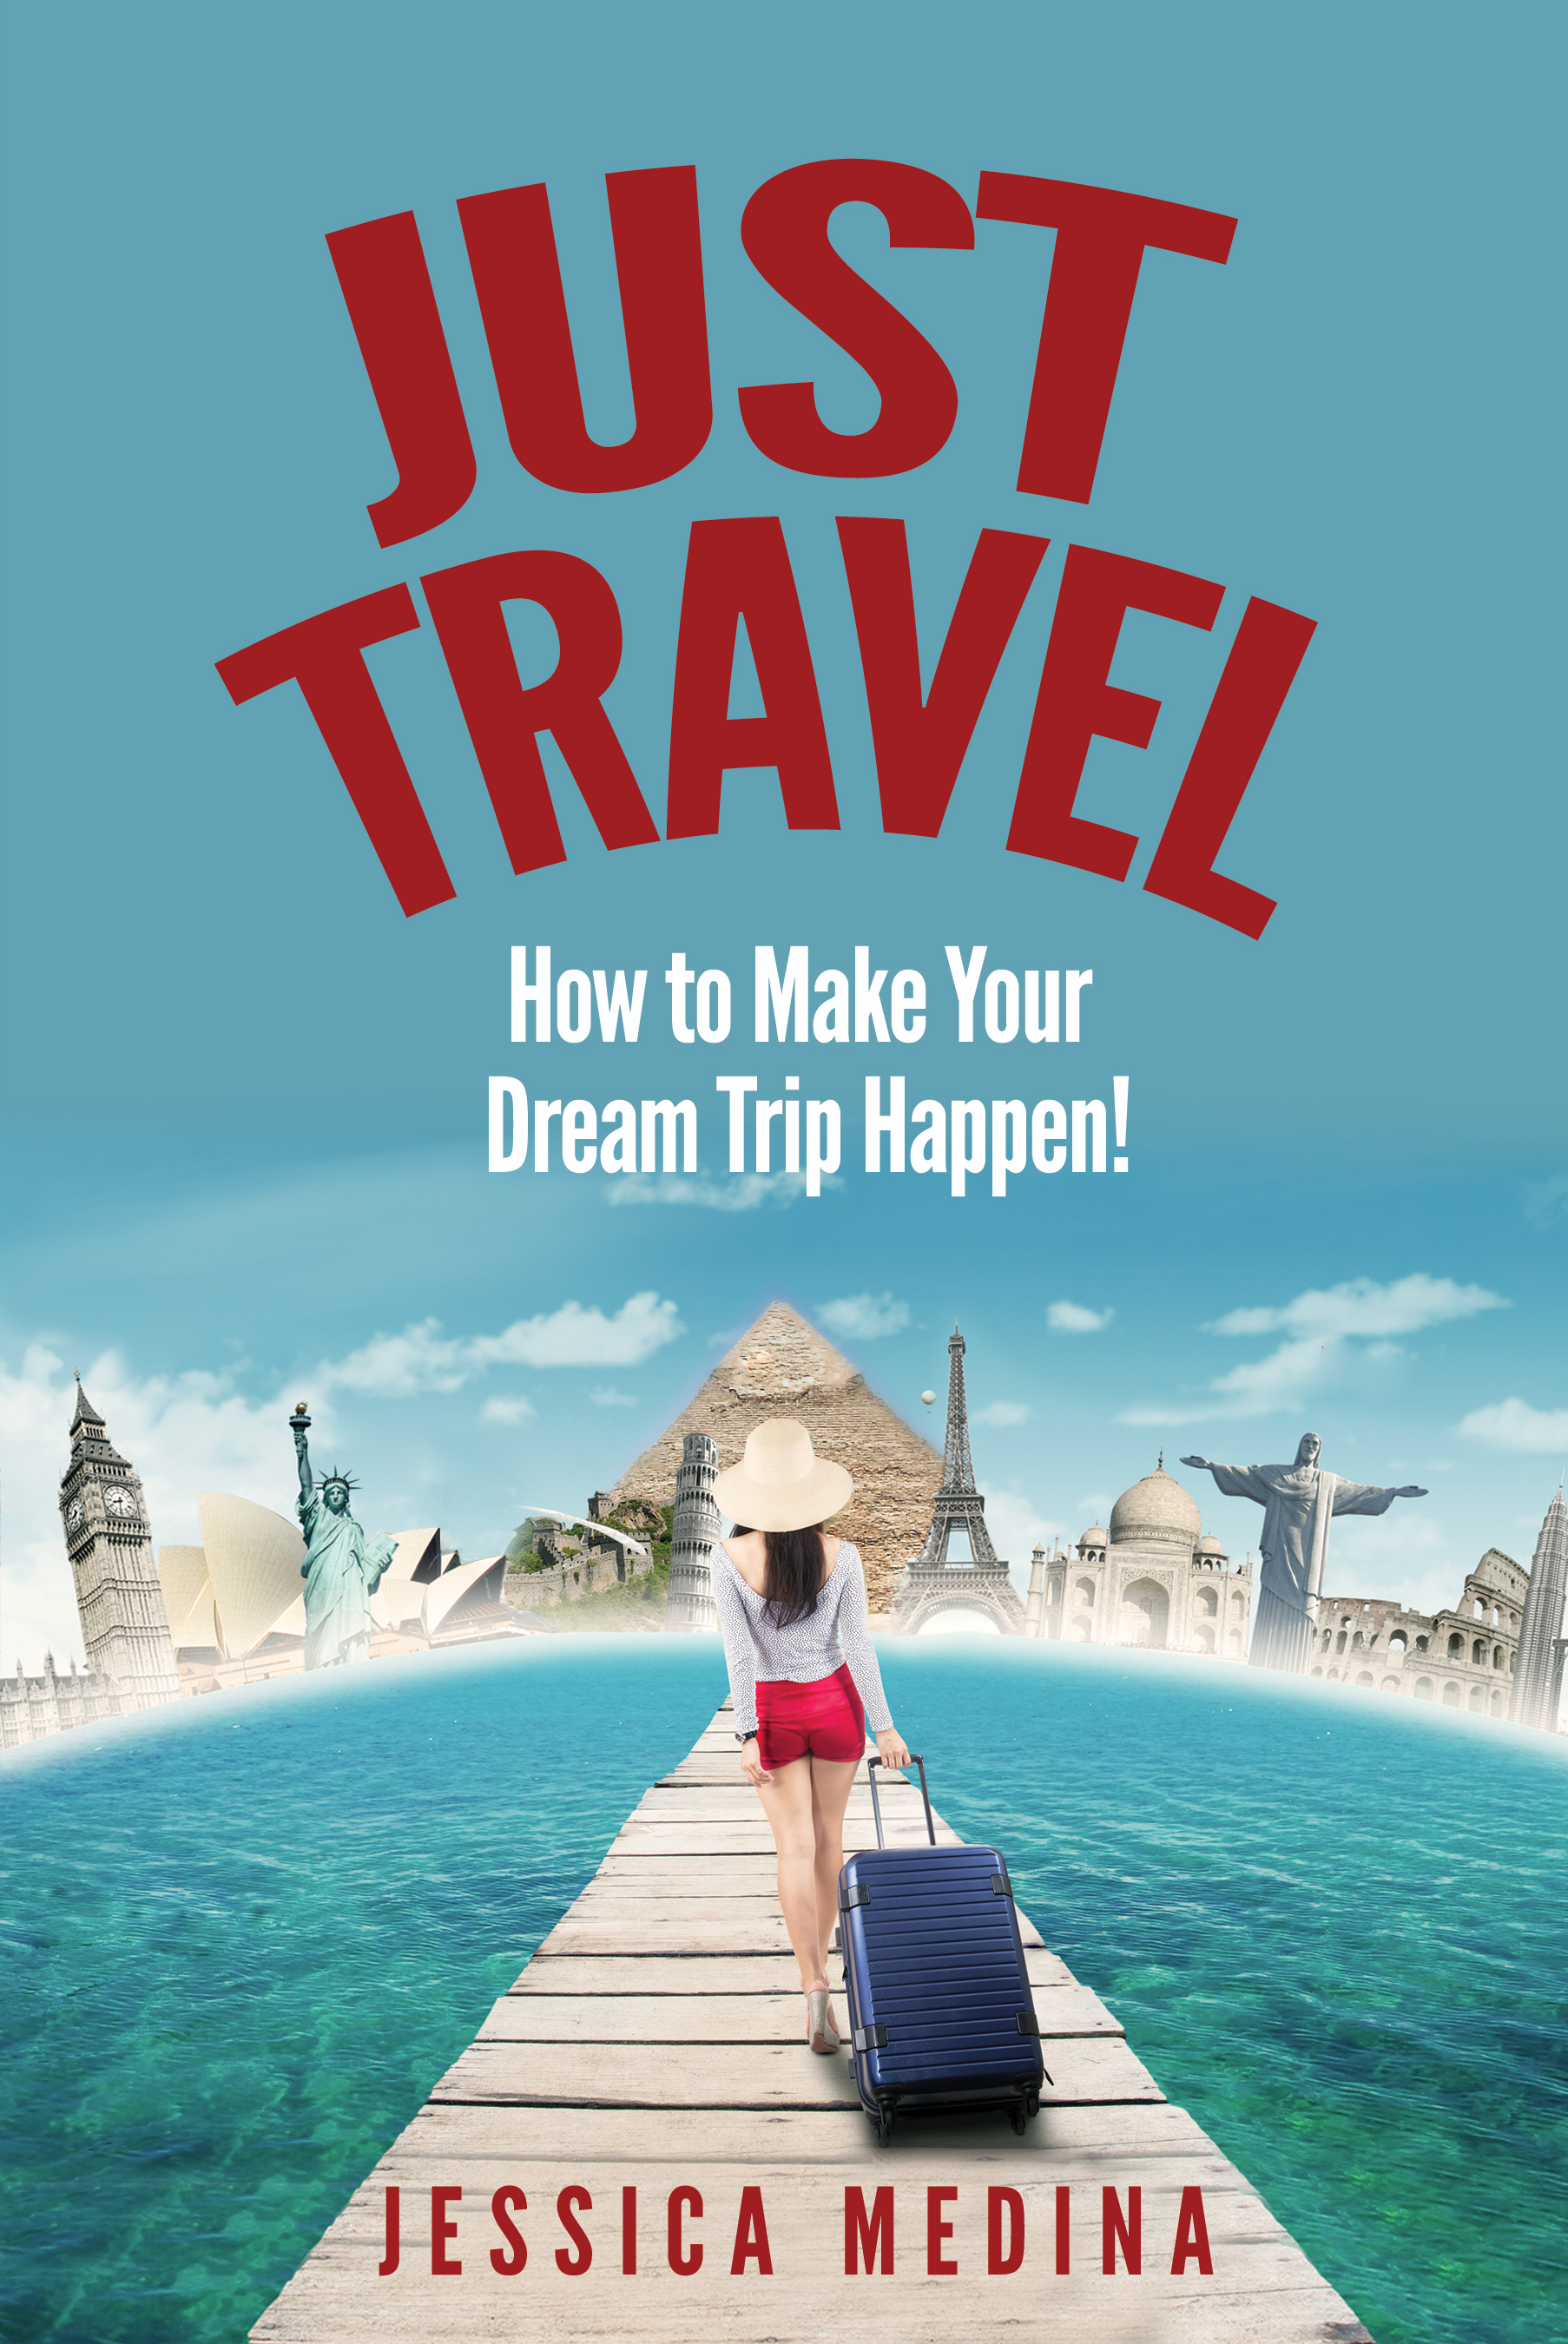 I am writing a book about travel, but I am sure I couldn't design a cover as well as you could.